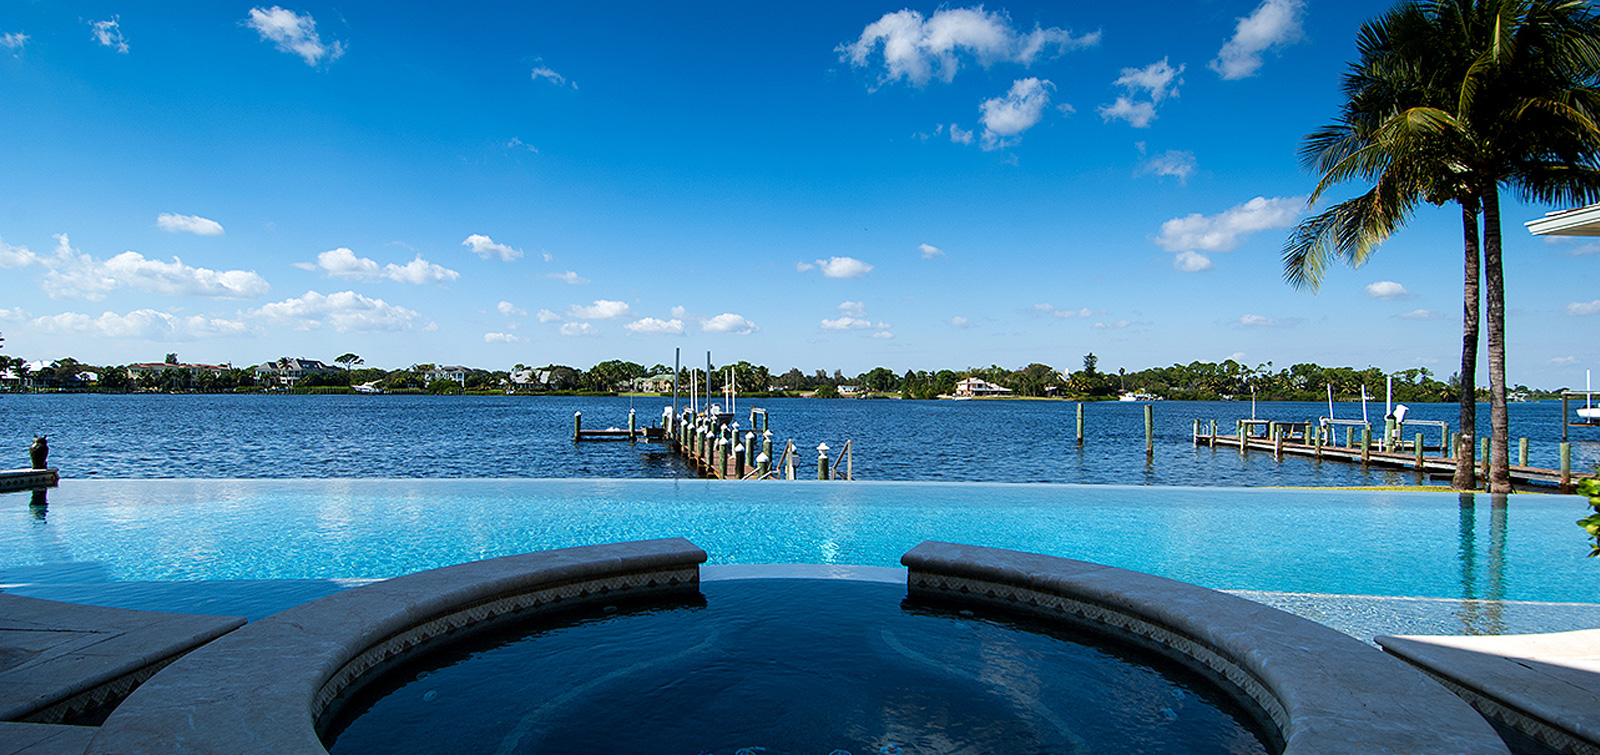 Tequesta, FL Luxury Homes for Sale